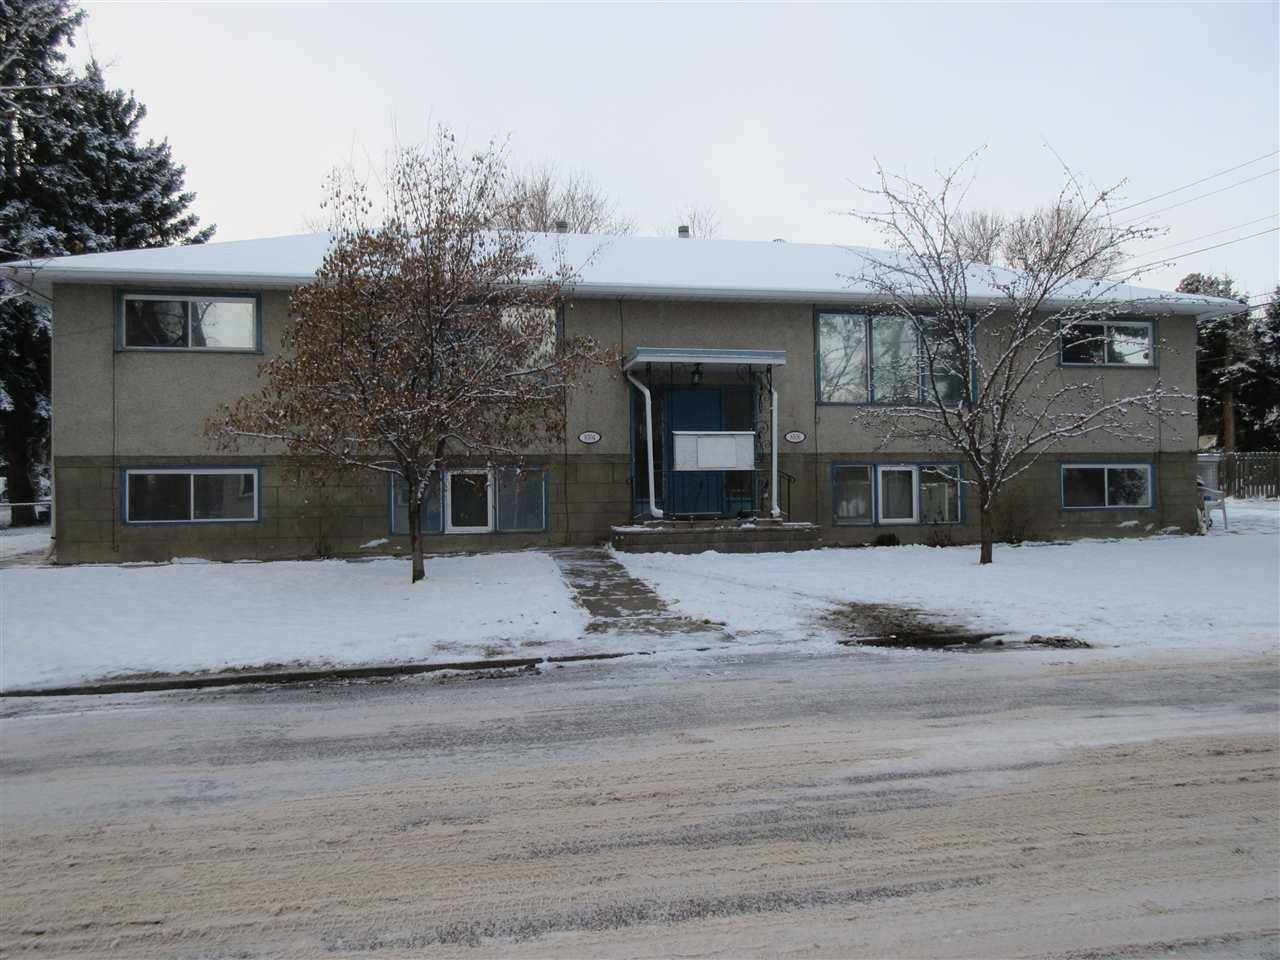 Townhouse for sale at 8504 98 St Nw Edmonton Alberta - MLS: E4181796